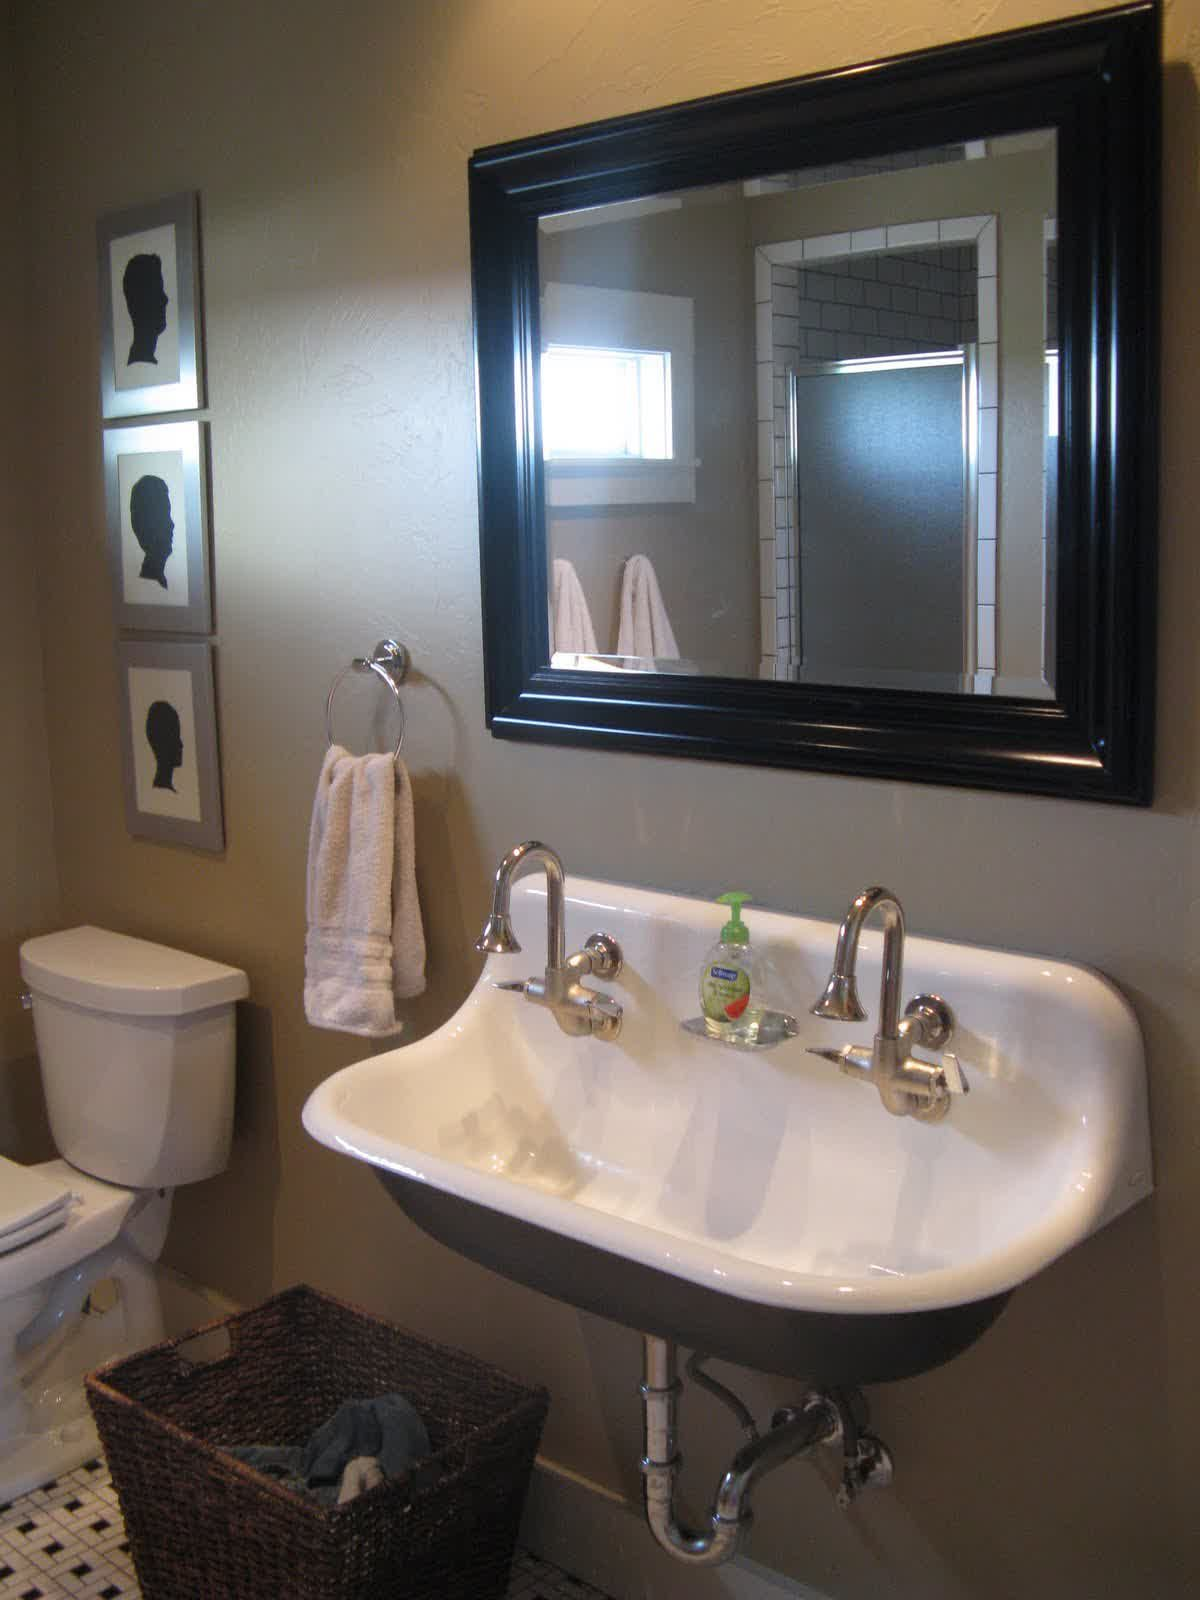 Kohler Trough Sink Idea In White With Two Units Of Water Faucet